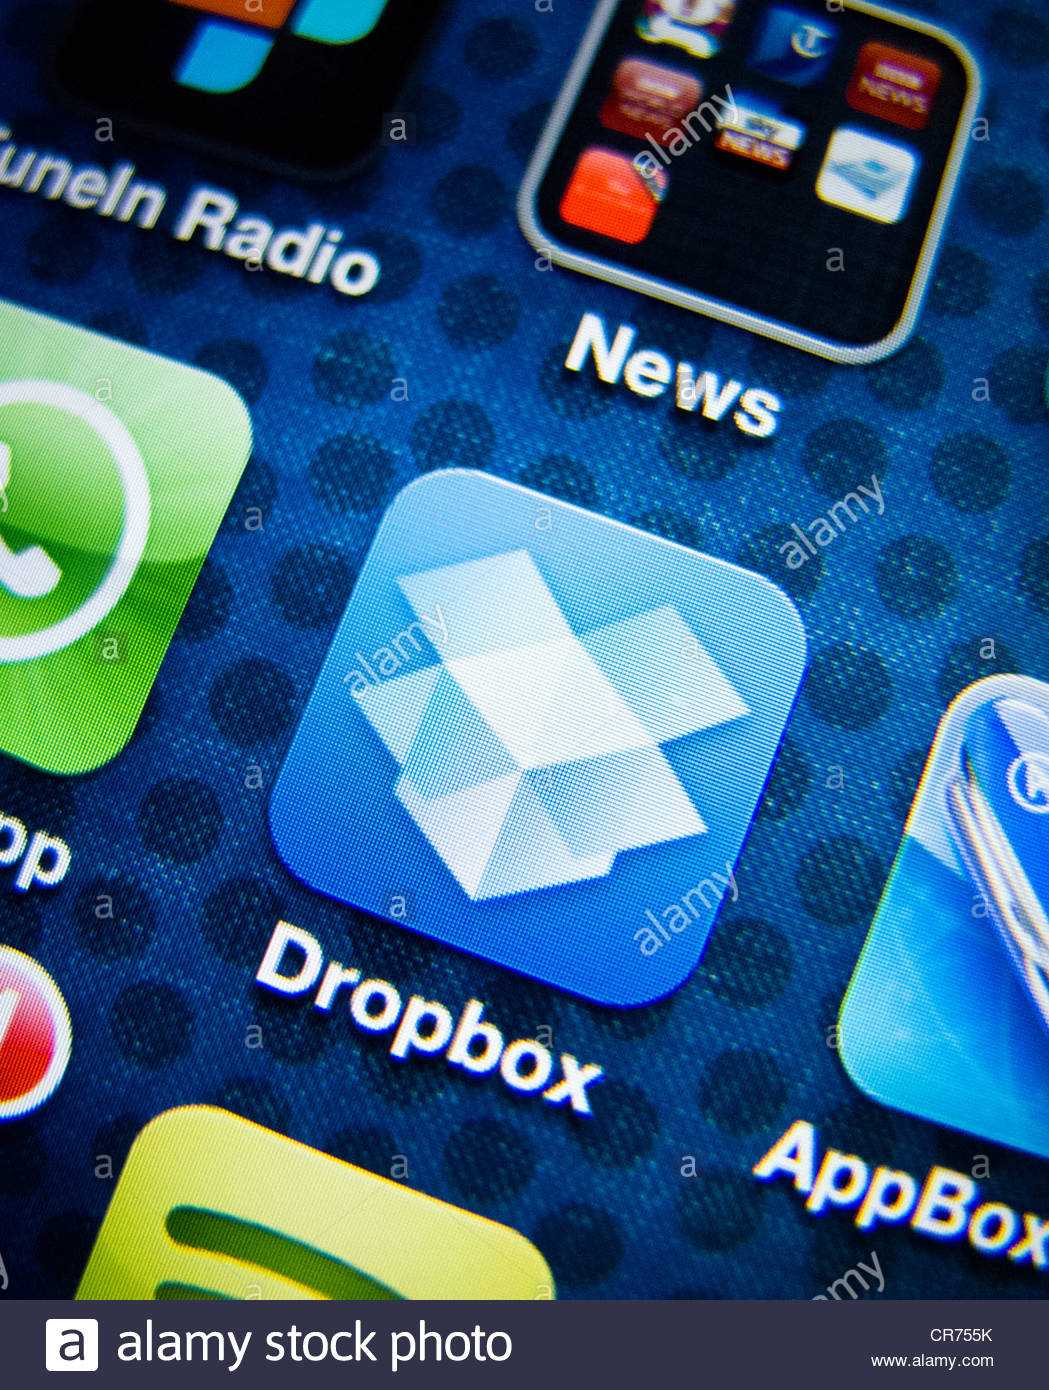 detail of iPhone 4G screen showing Dropbox cloud storage app - Stock Image